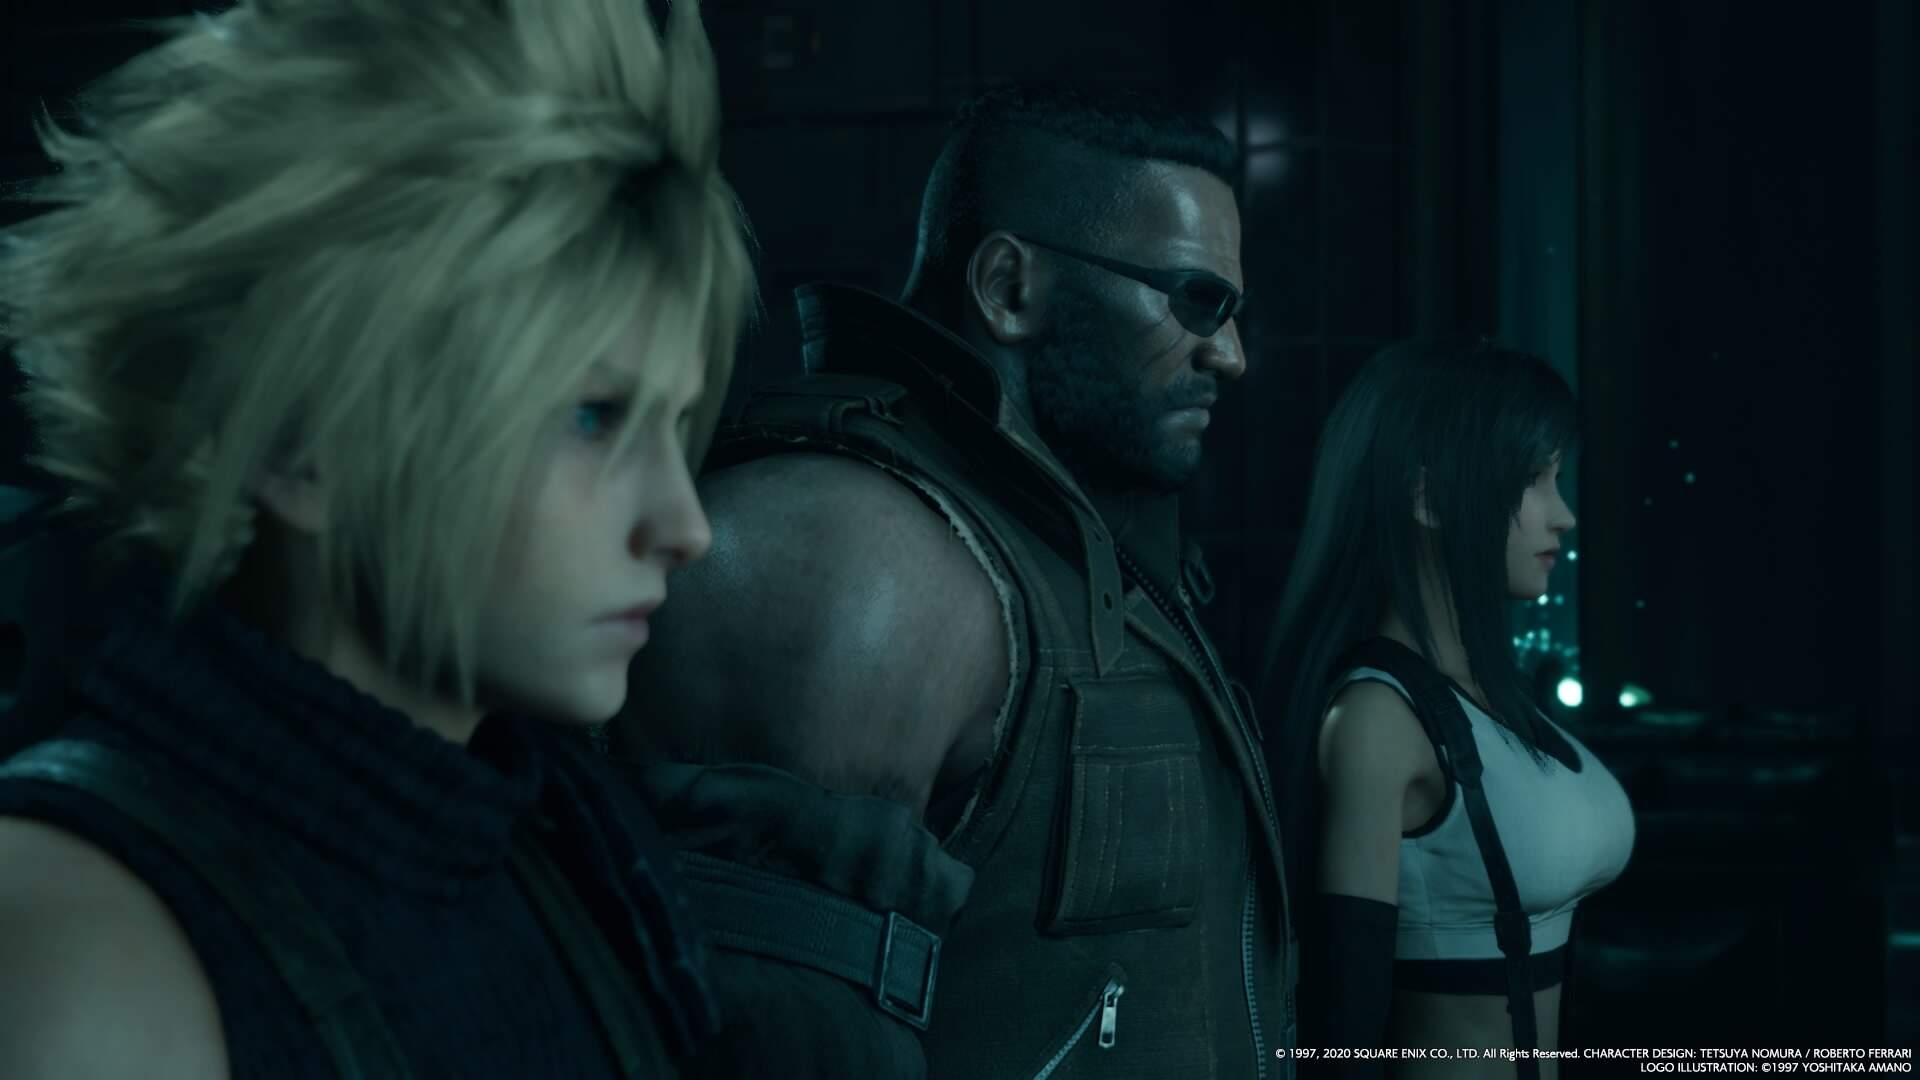 Final Fantasy 7 Remake: Should You Take the Elevator or the Stairs at Shinra HQ?